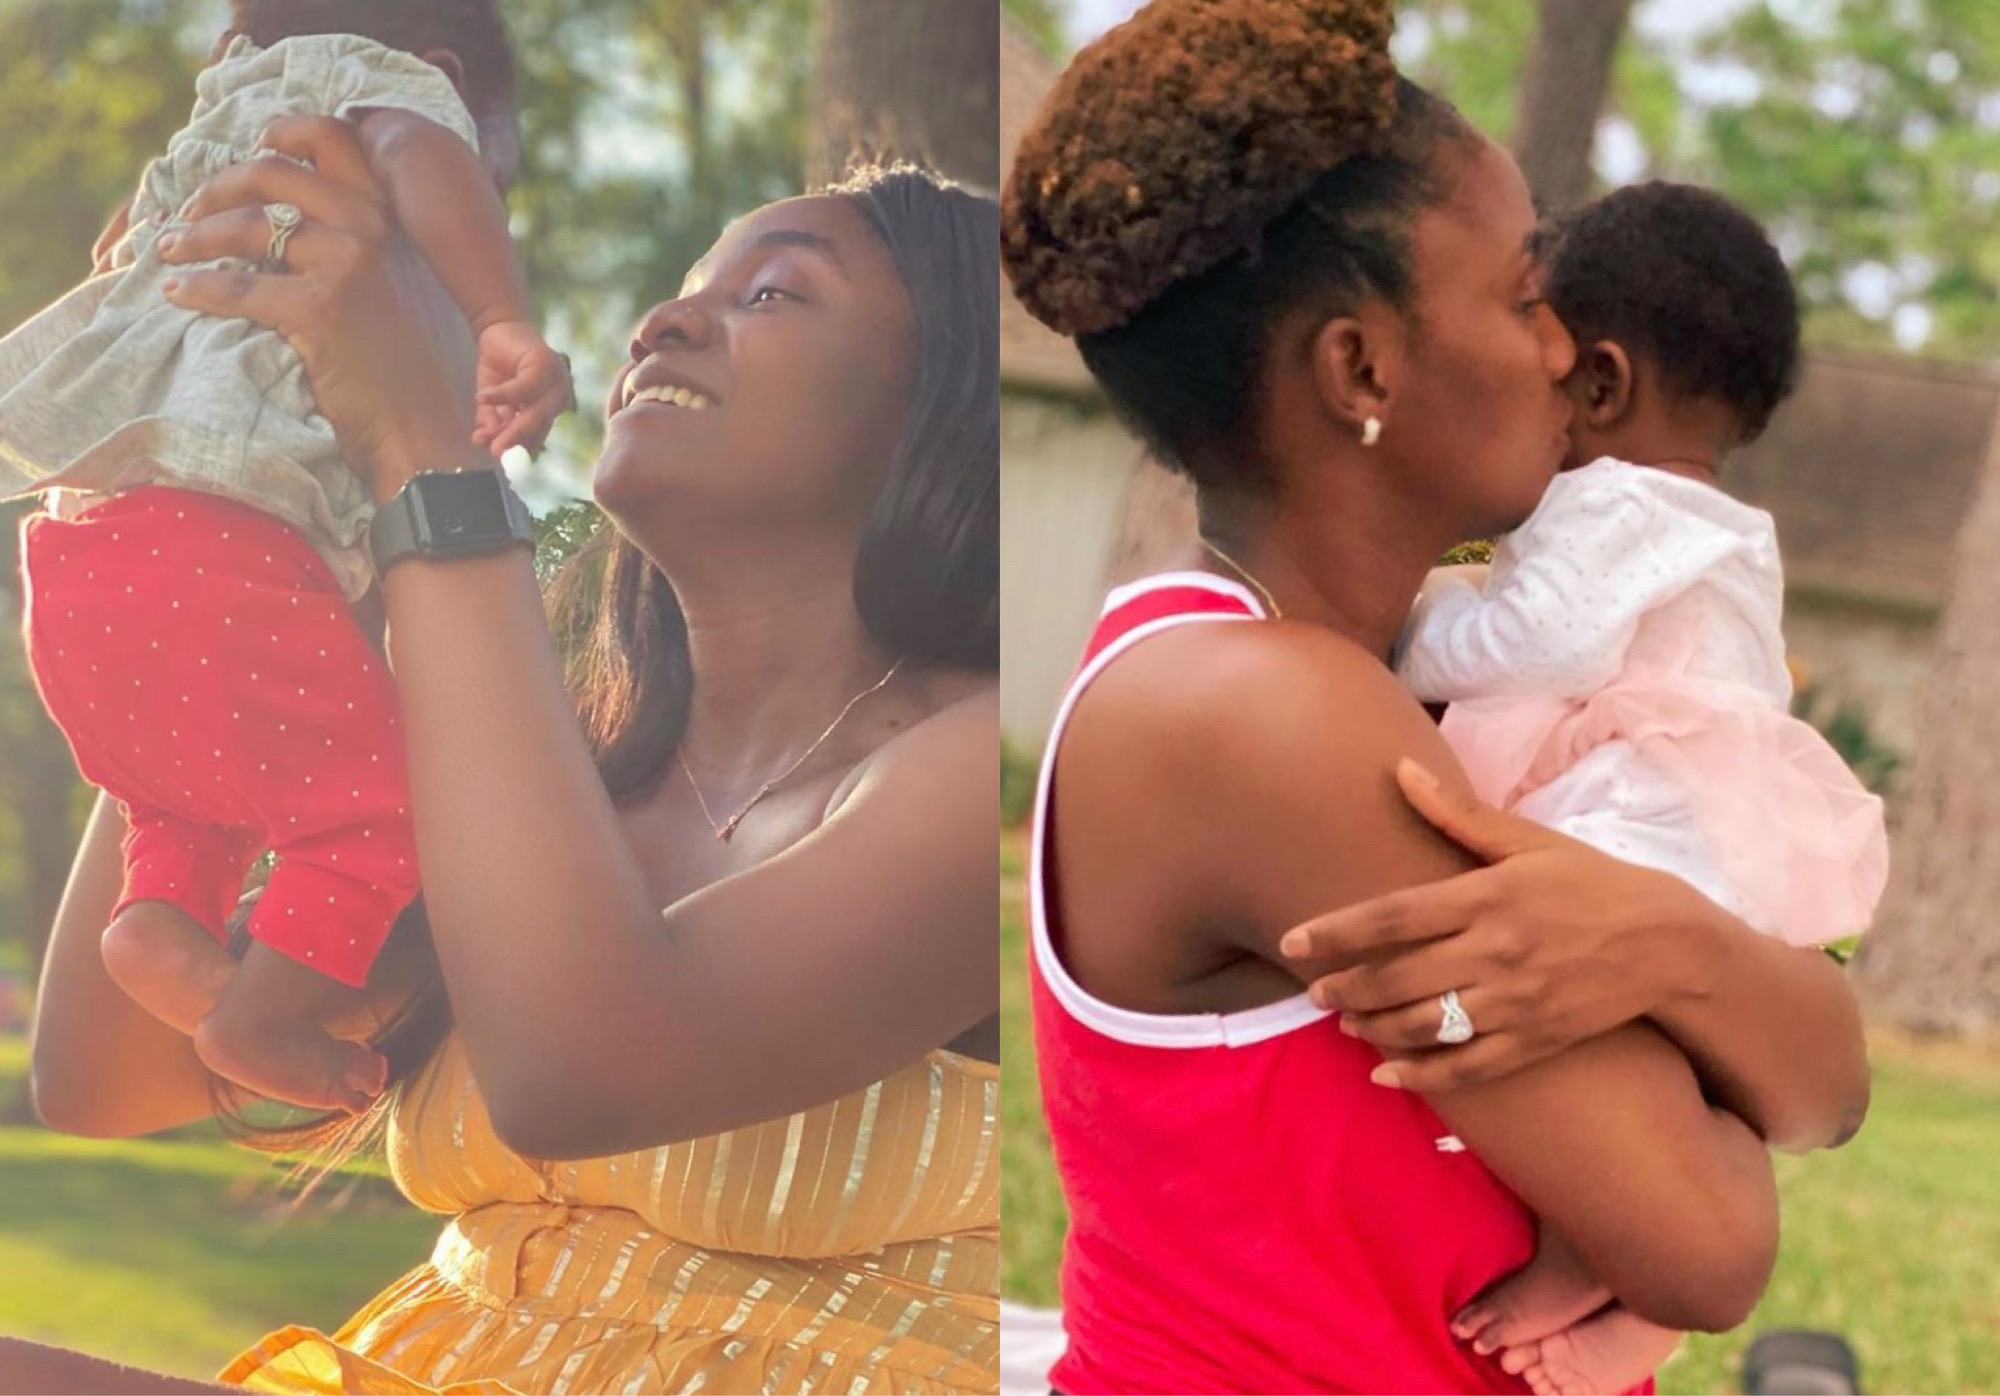 Singer Simi Pens Beautiful Letter To Her Daughter As She Turns 6 Months